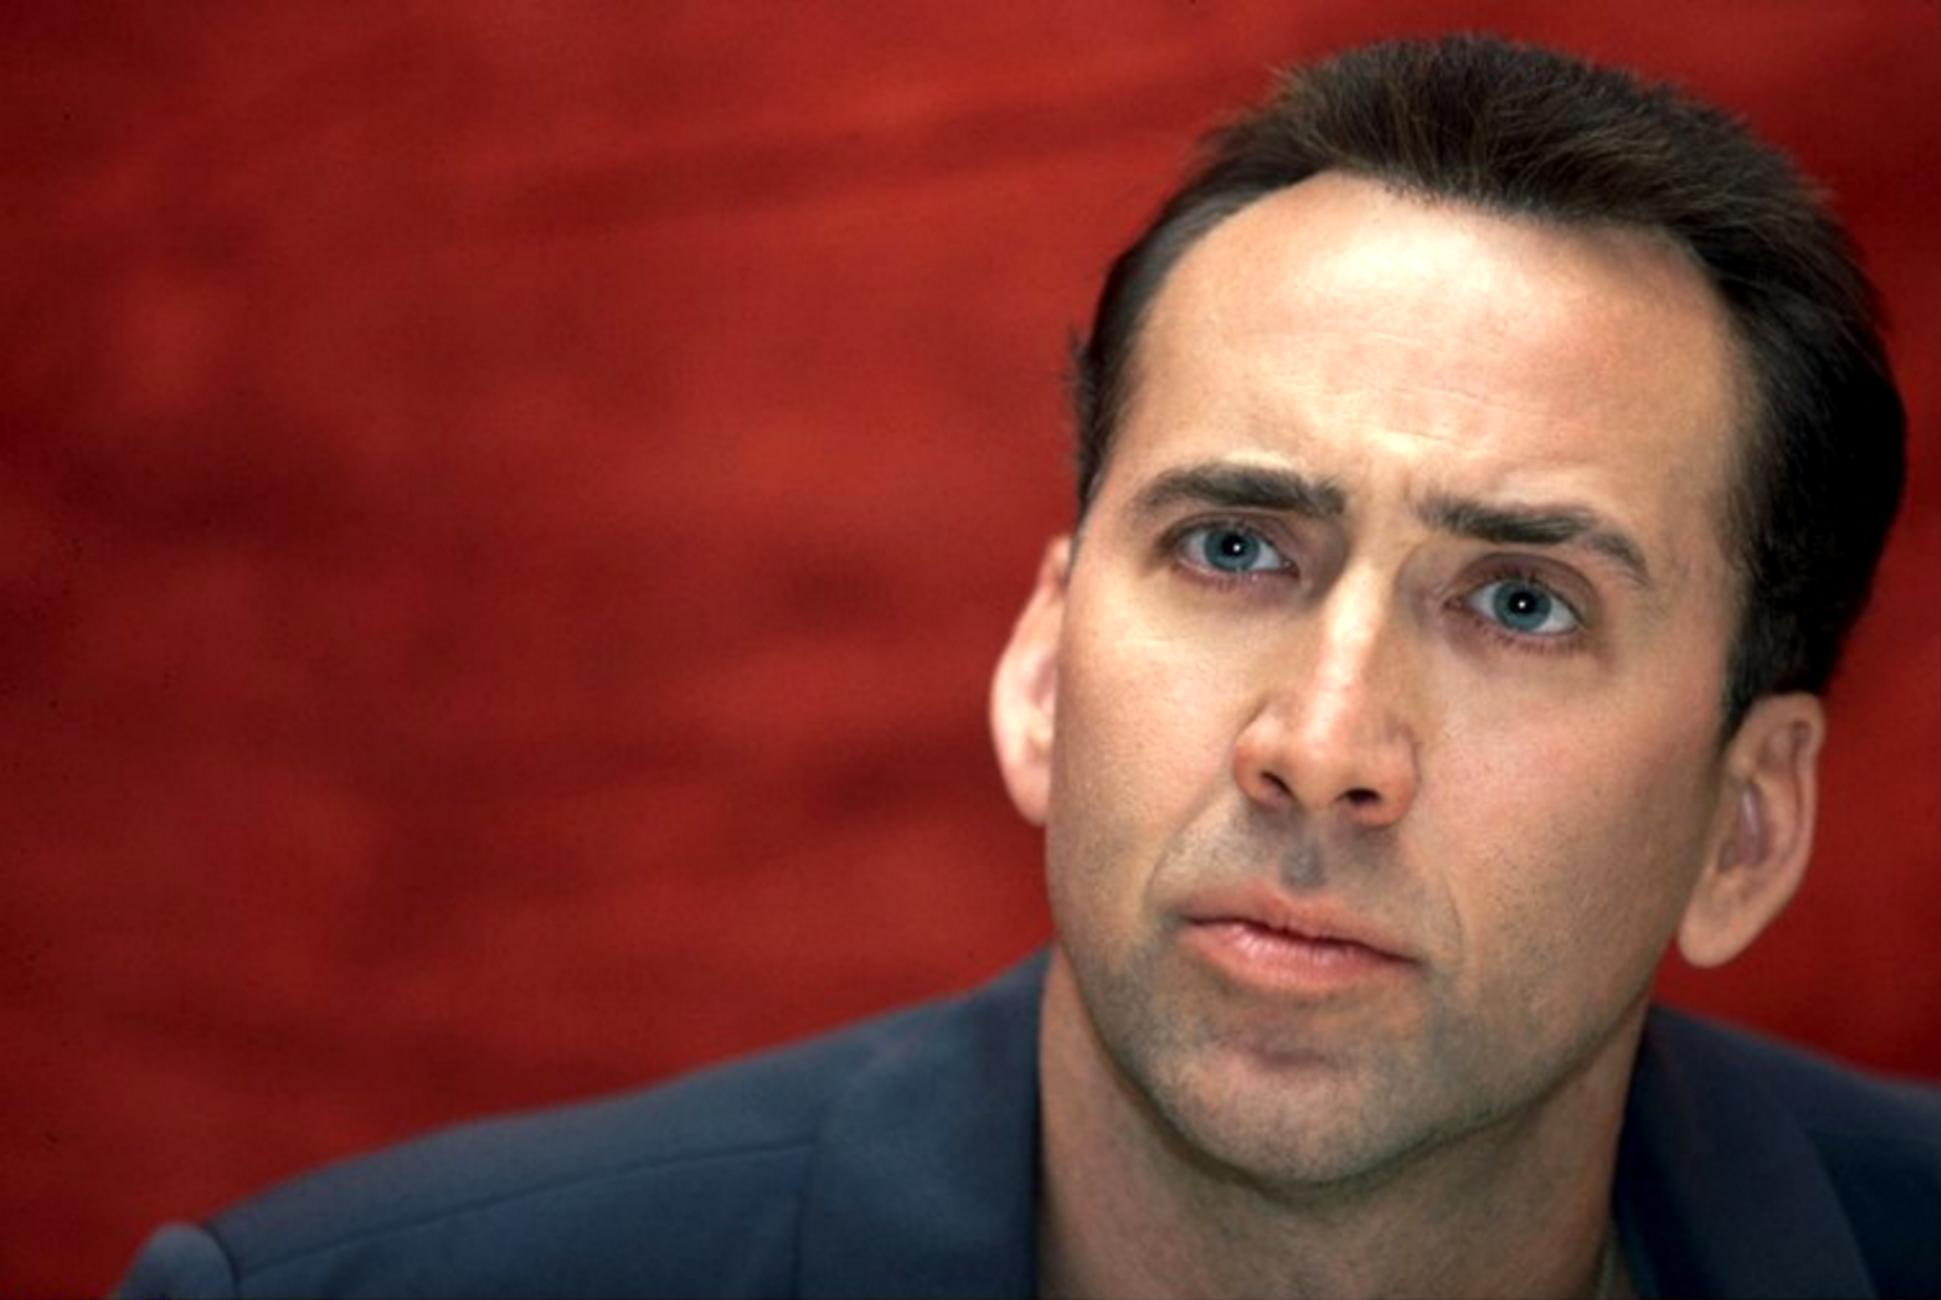 Nic CAge